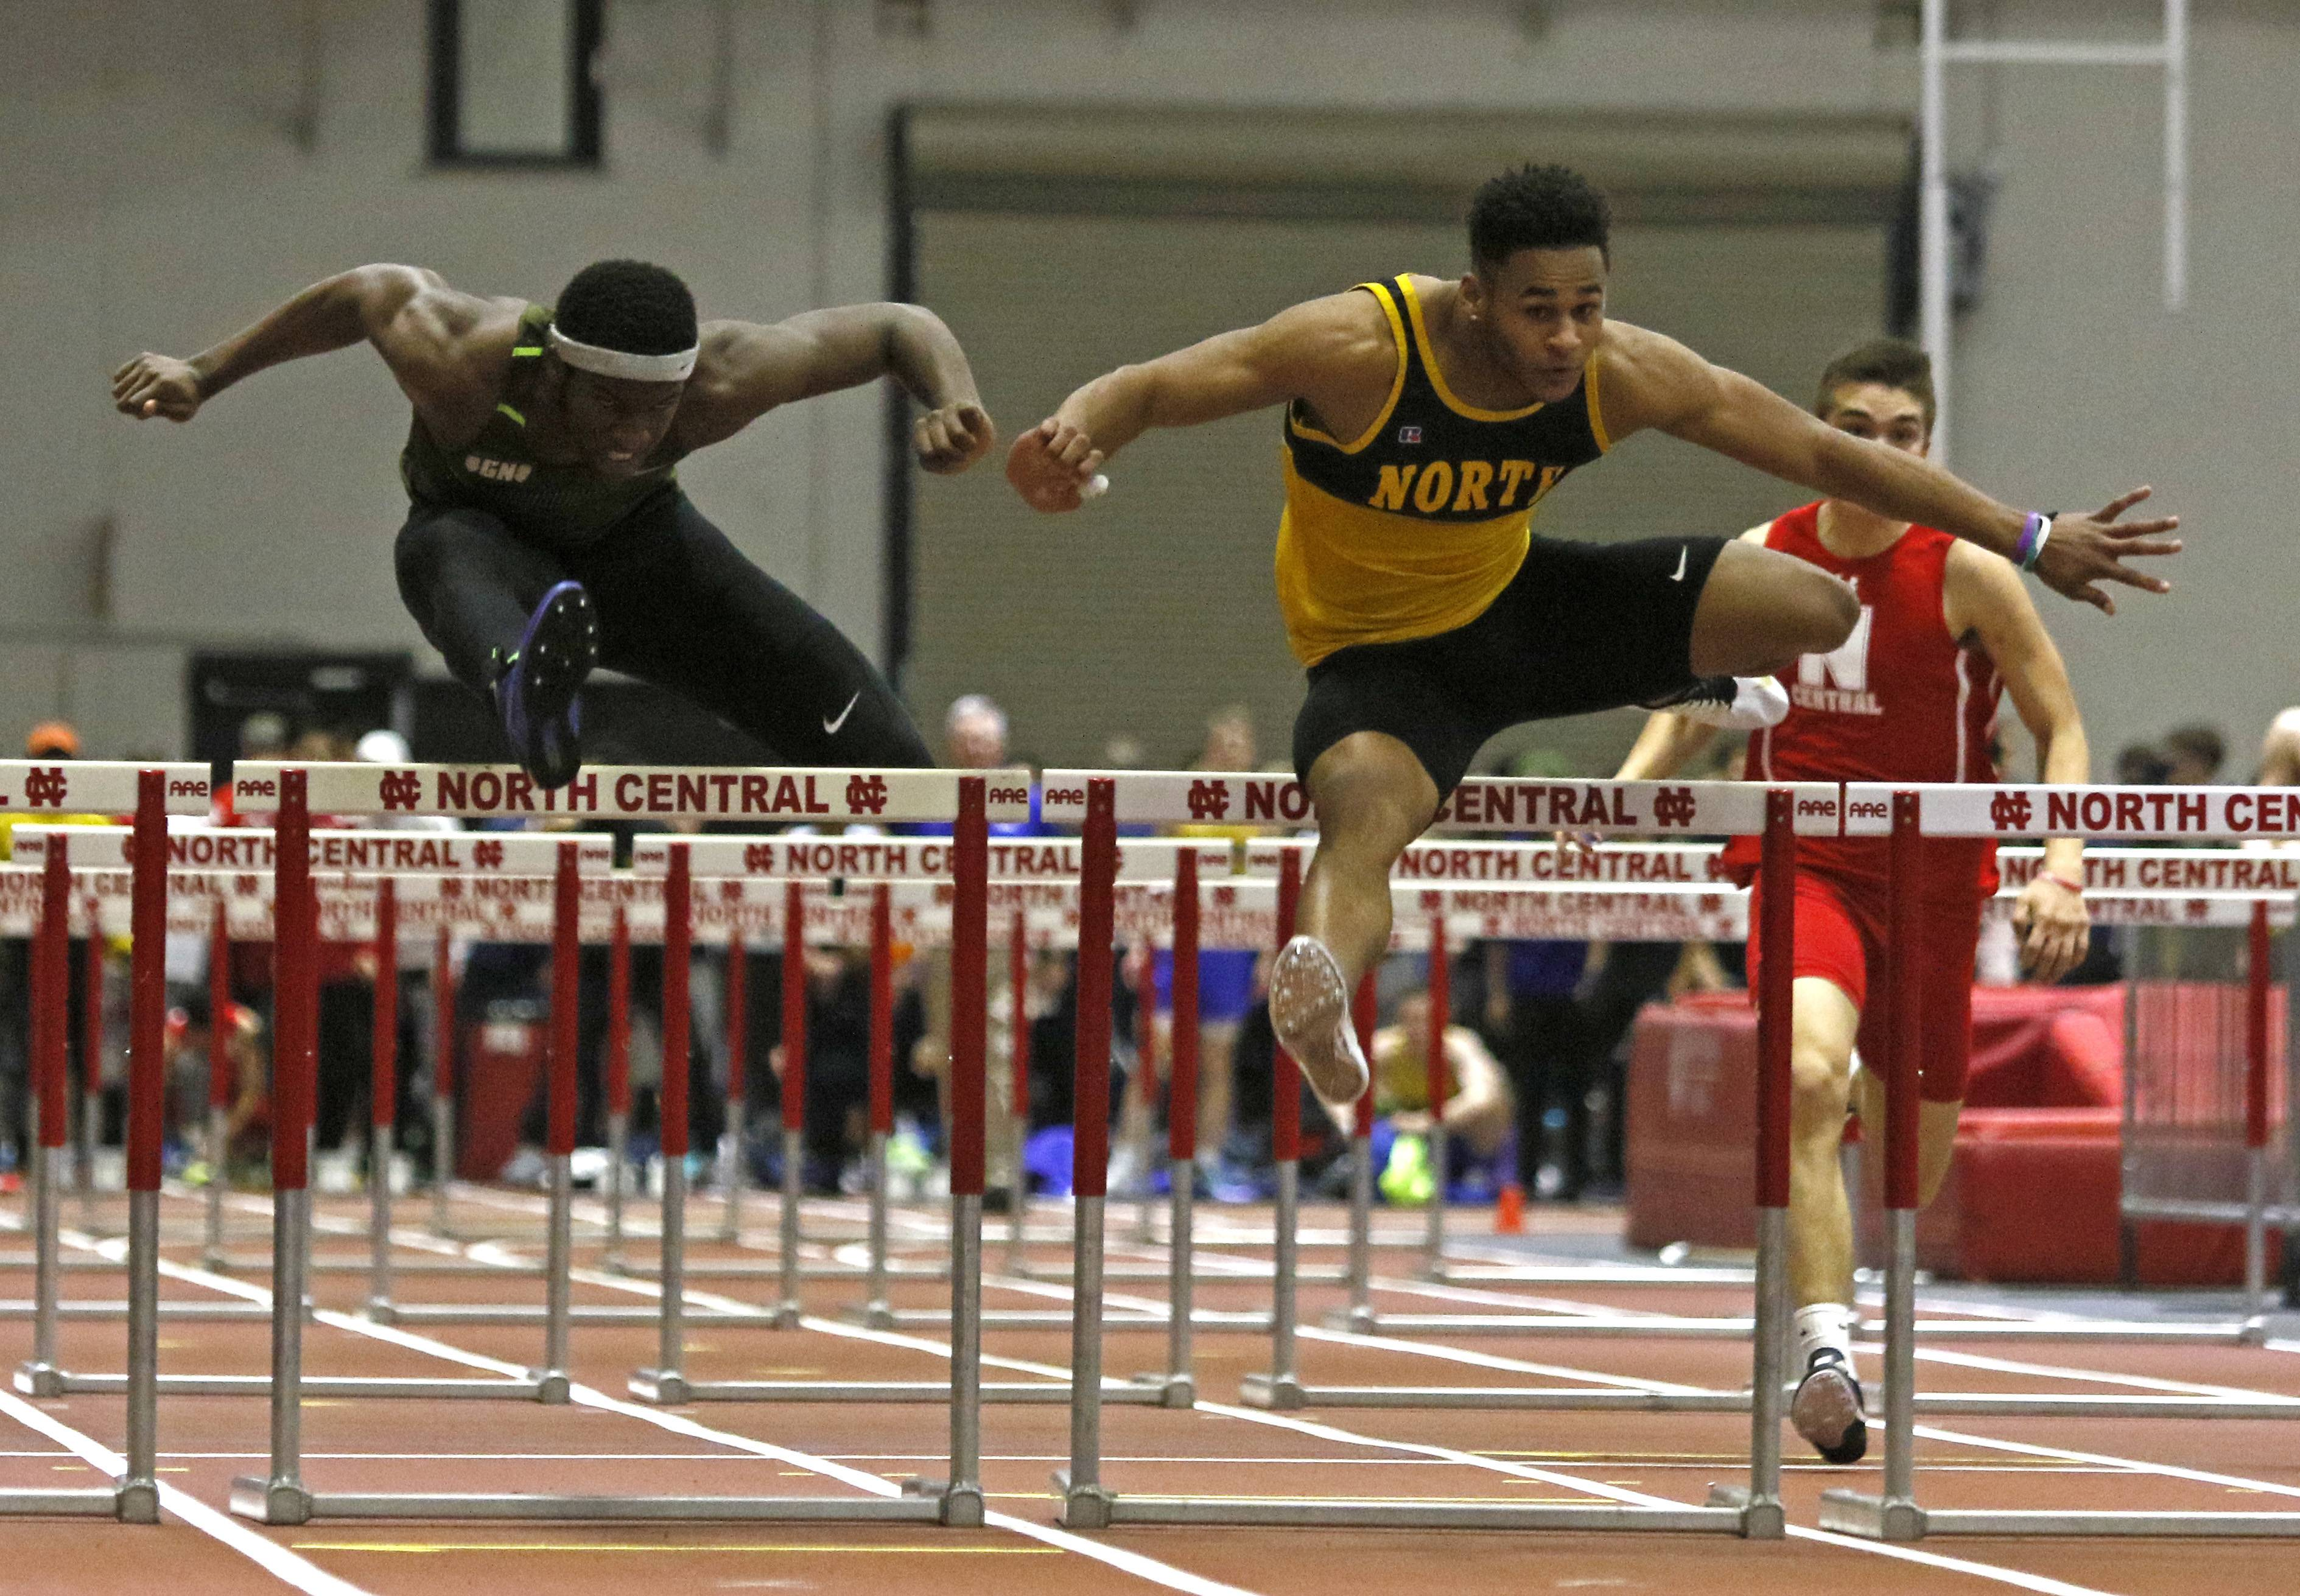 Glenbard North's Paris Miller, left, and Jace James, right, battle in the 55 meter hurdles at the DuPage Valley Conference boys indoor track meet at North Central College.